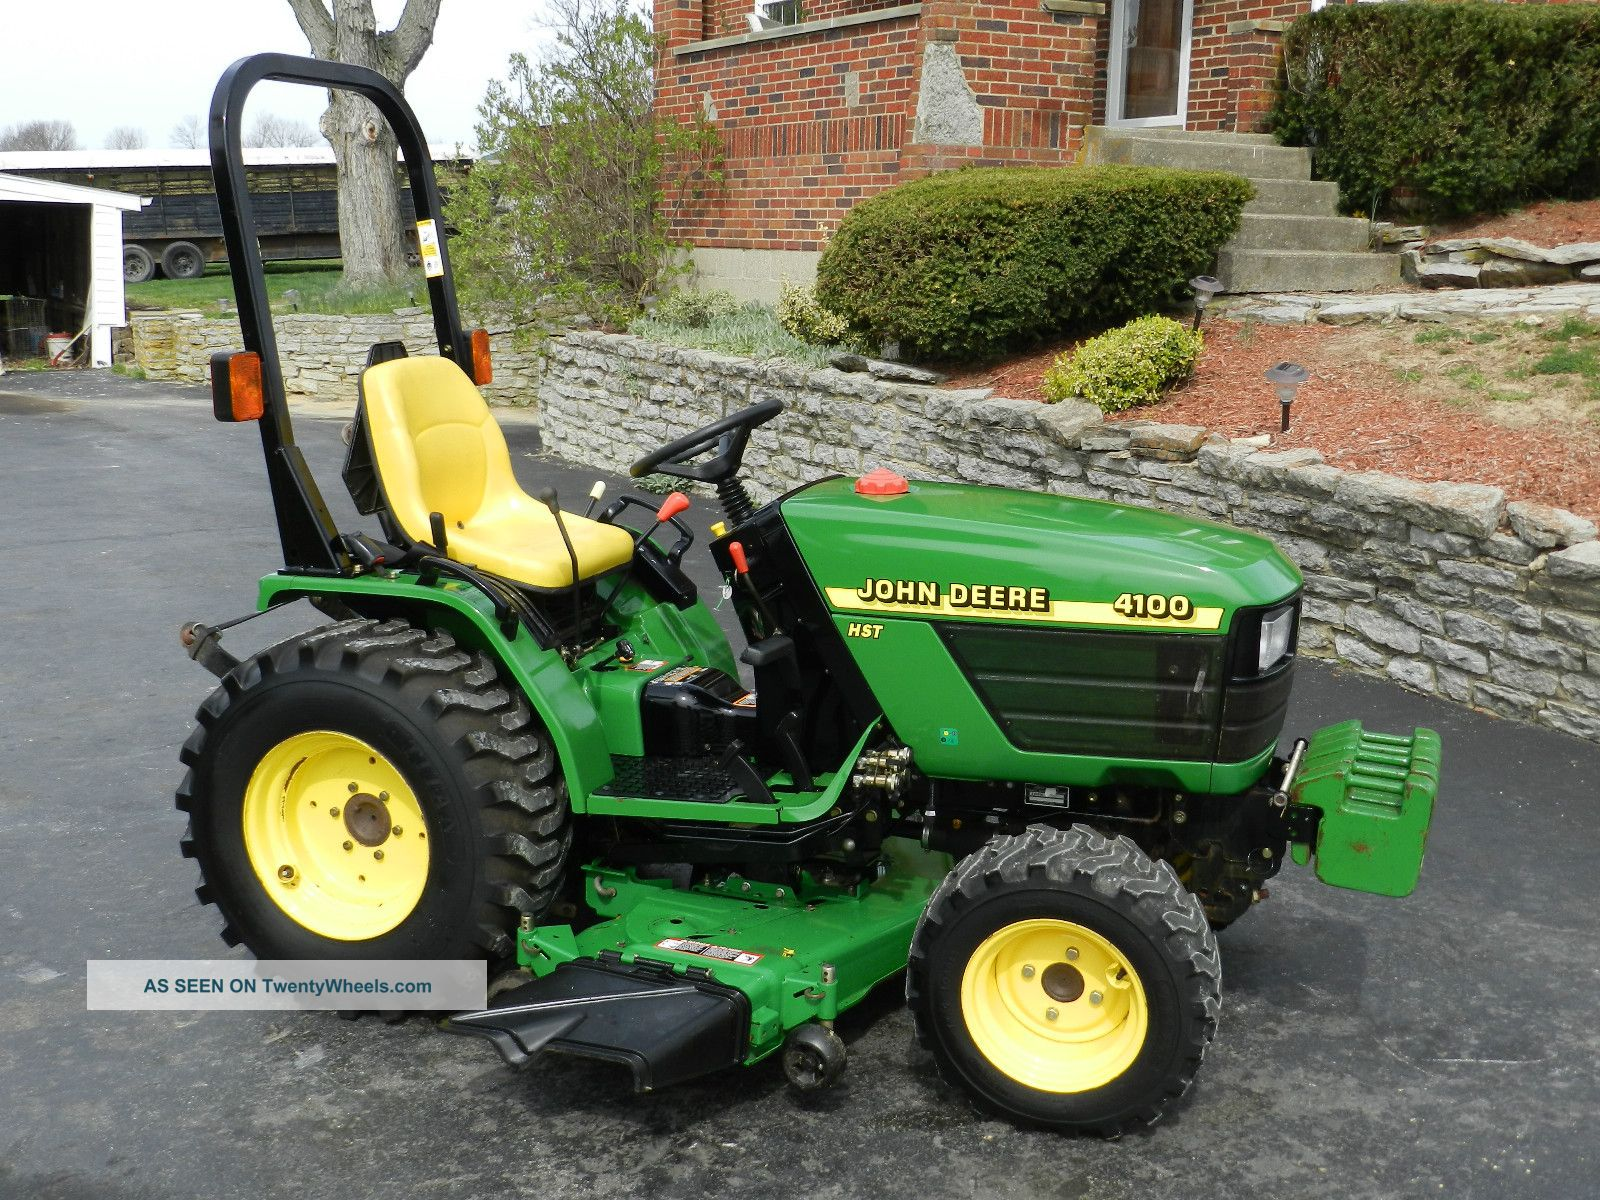 John Deere 4100 Compact Tractor & 54 In Belly Mower - - 4x4 - 450 Hrs Tractors photo